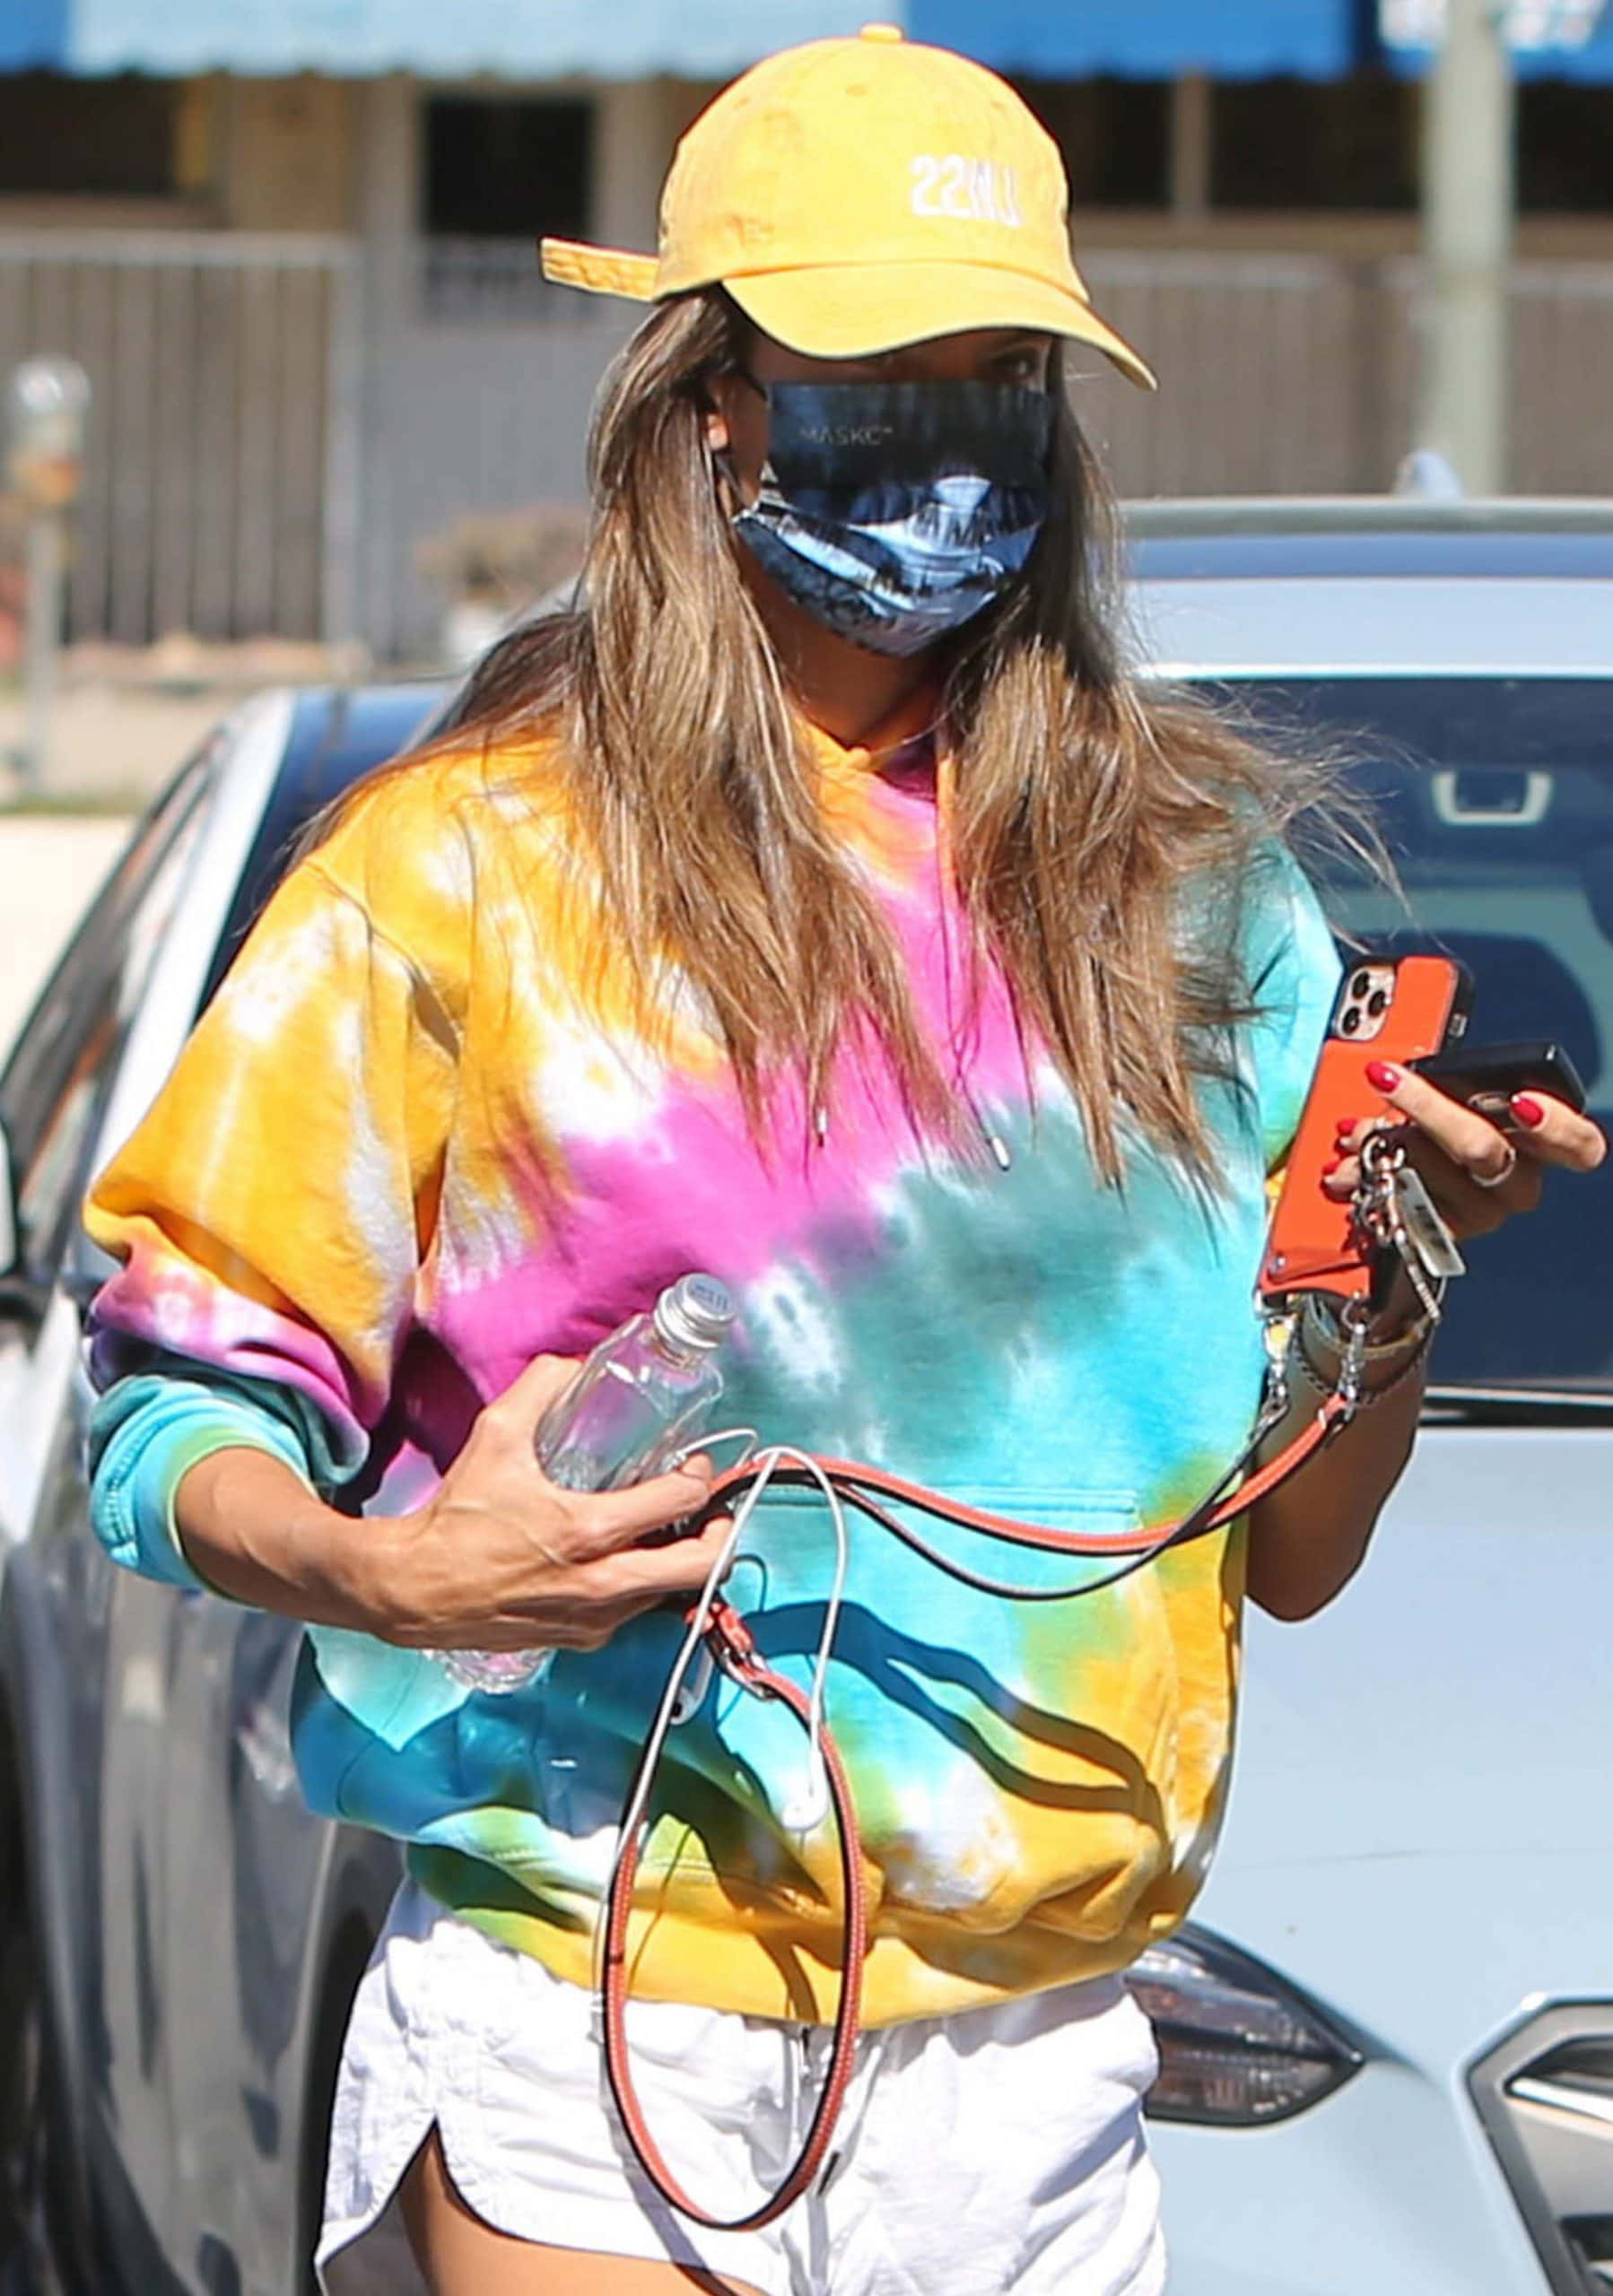 Alessandra Ambrosio styles her summery look with a cap, tie-dye face mask, and flip-flops